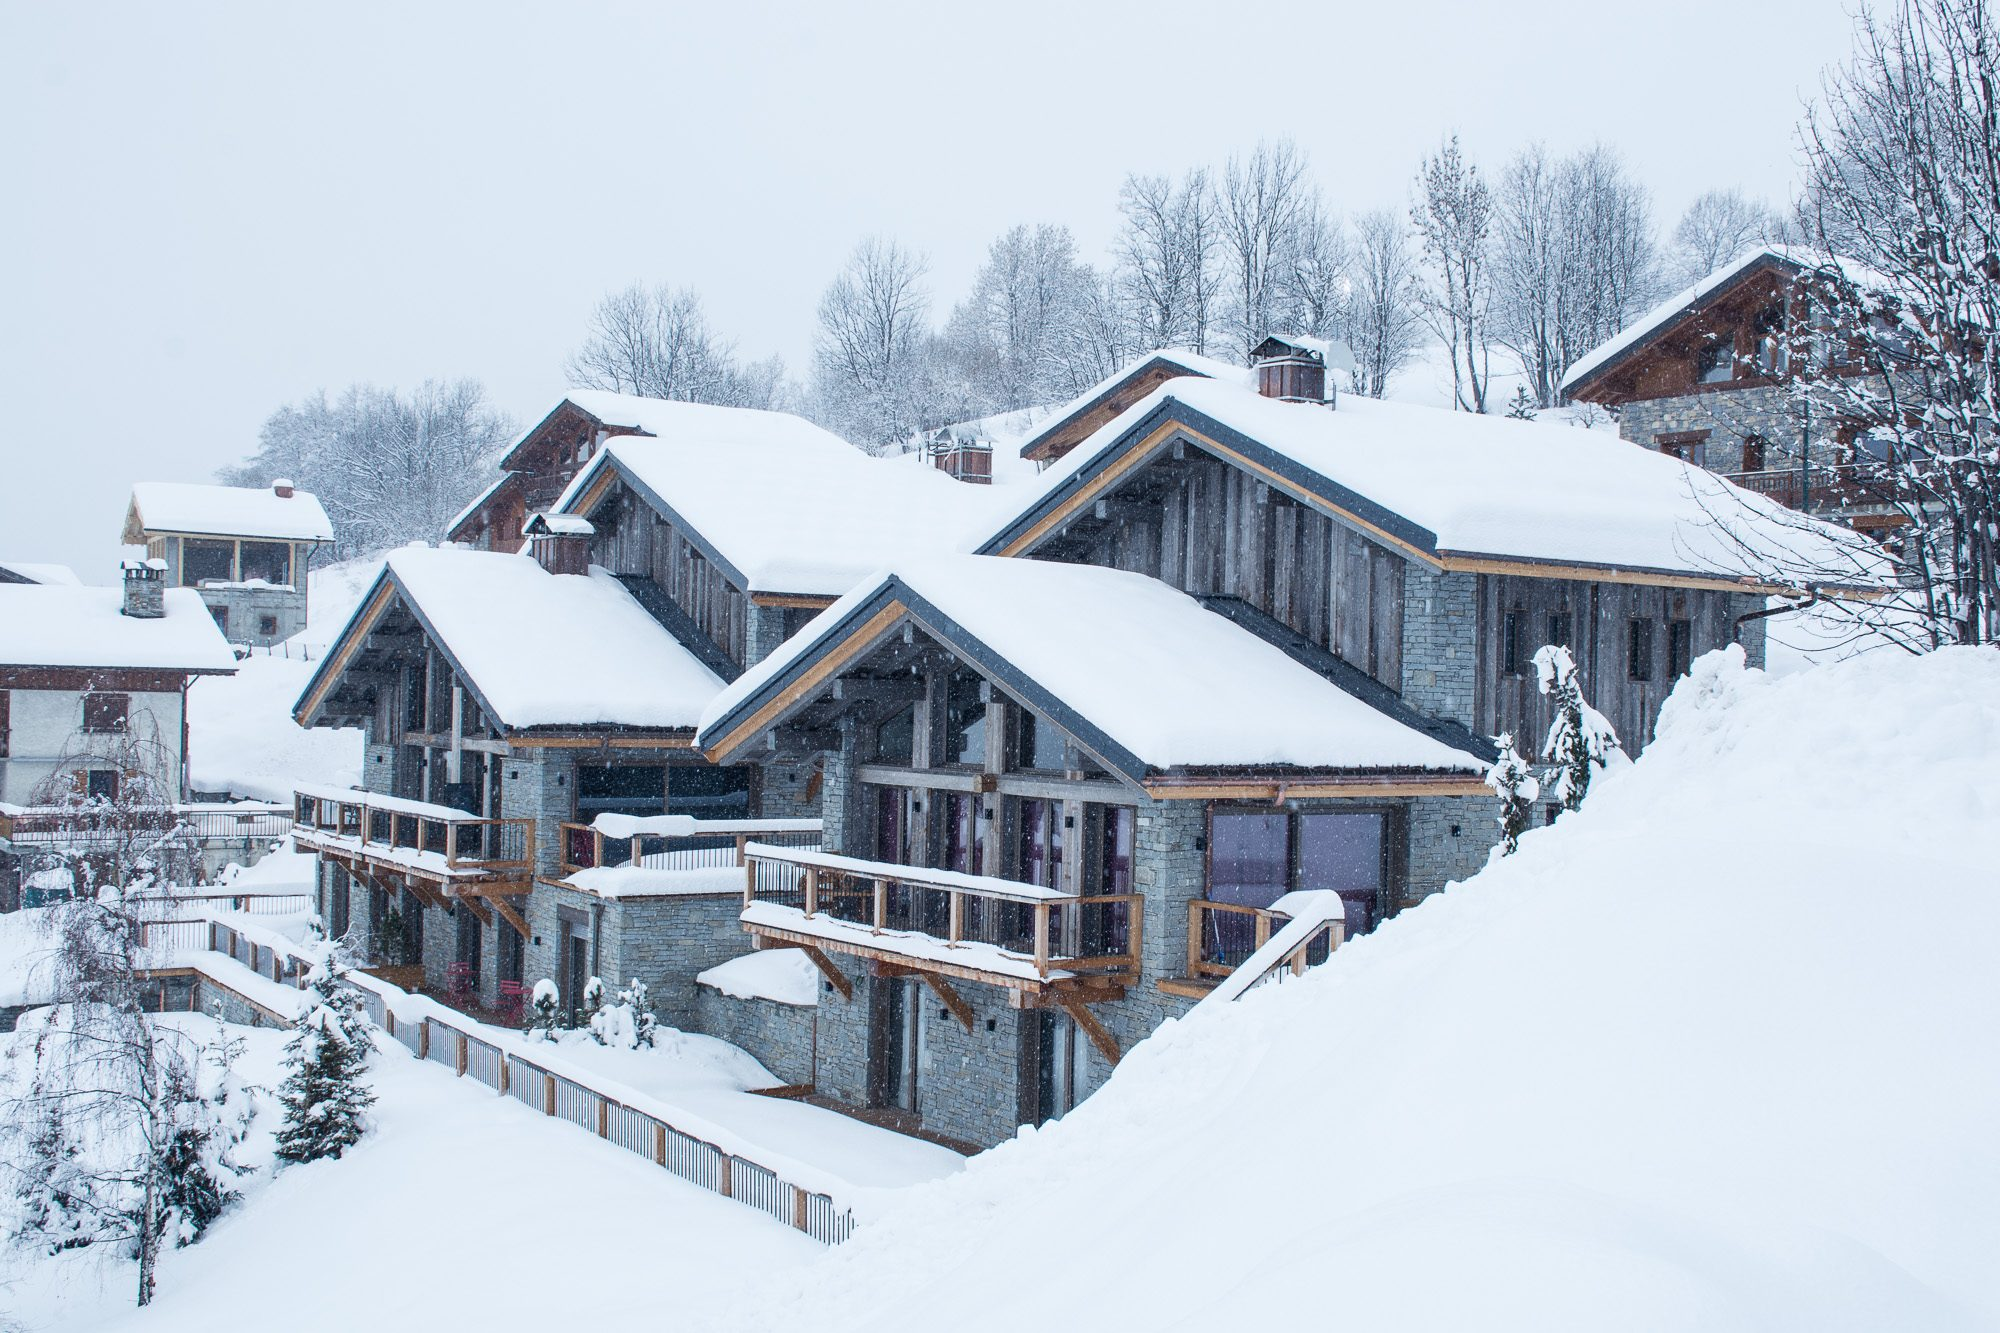 Snowy exterior view of Chalet Le Grand Coeur and Coeur Blanc